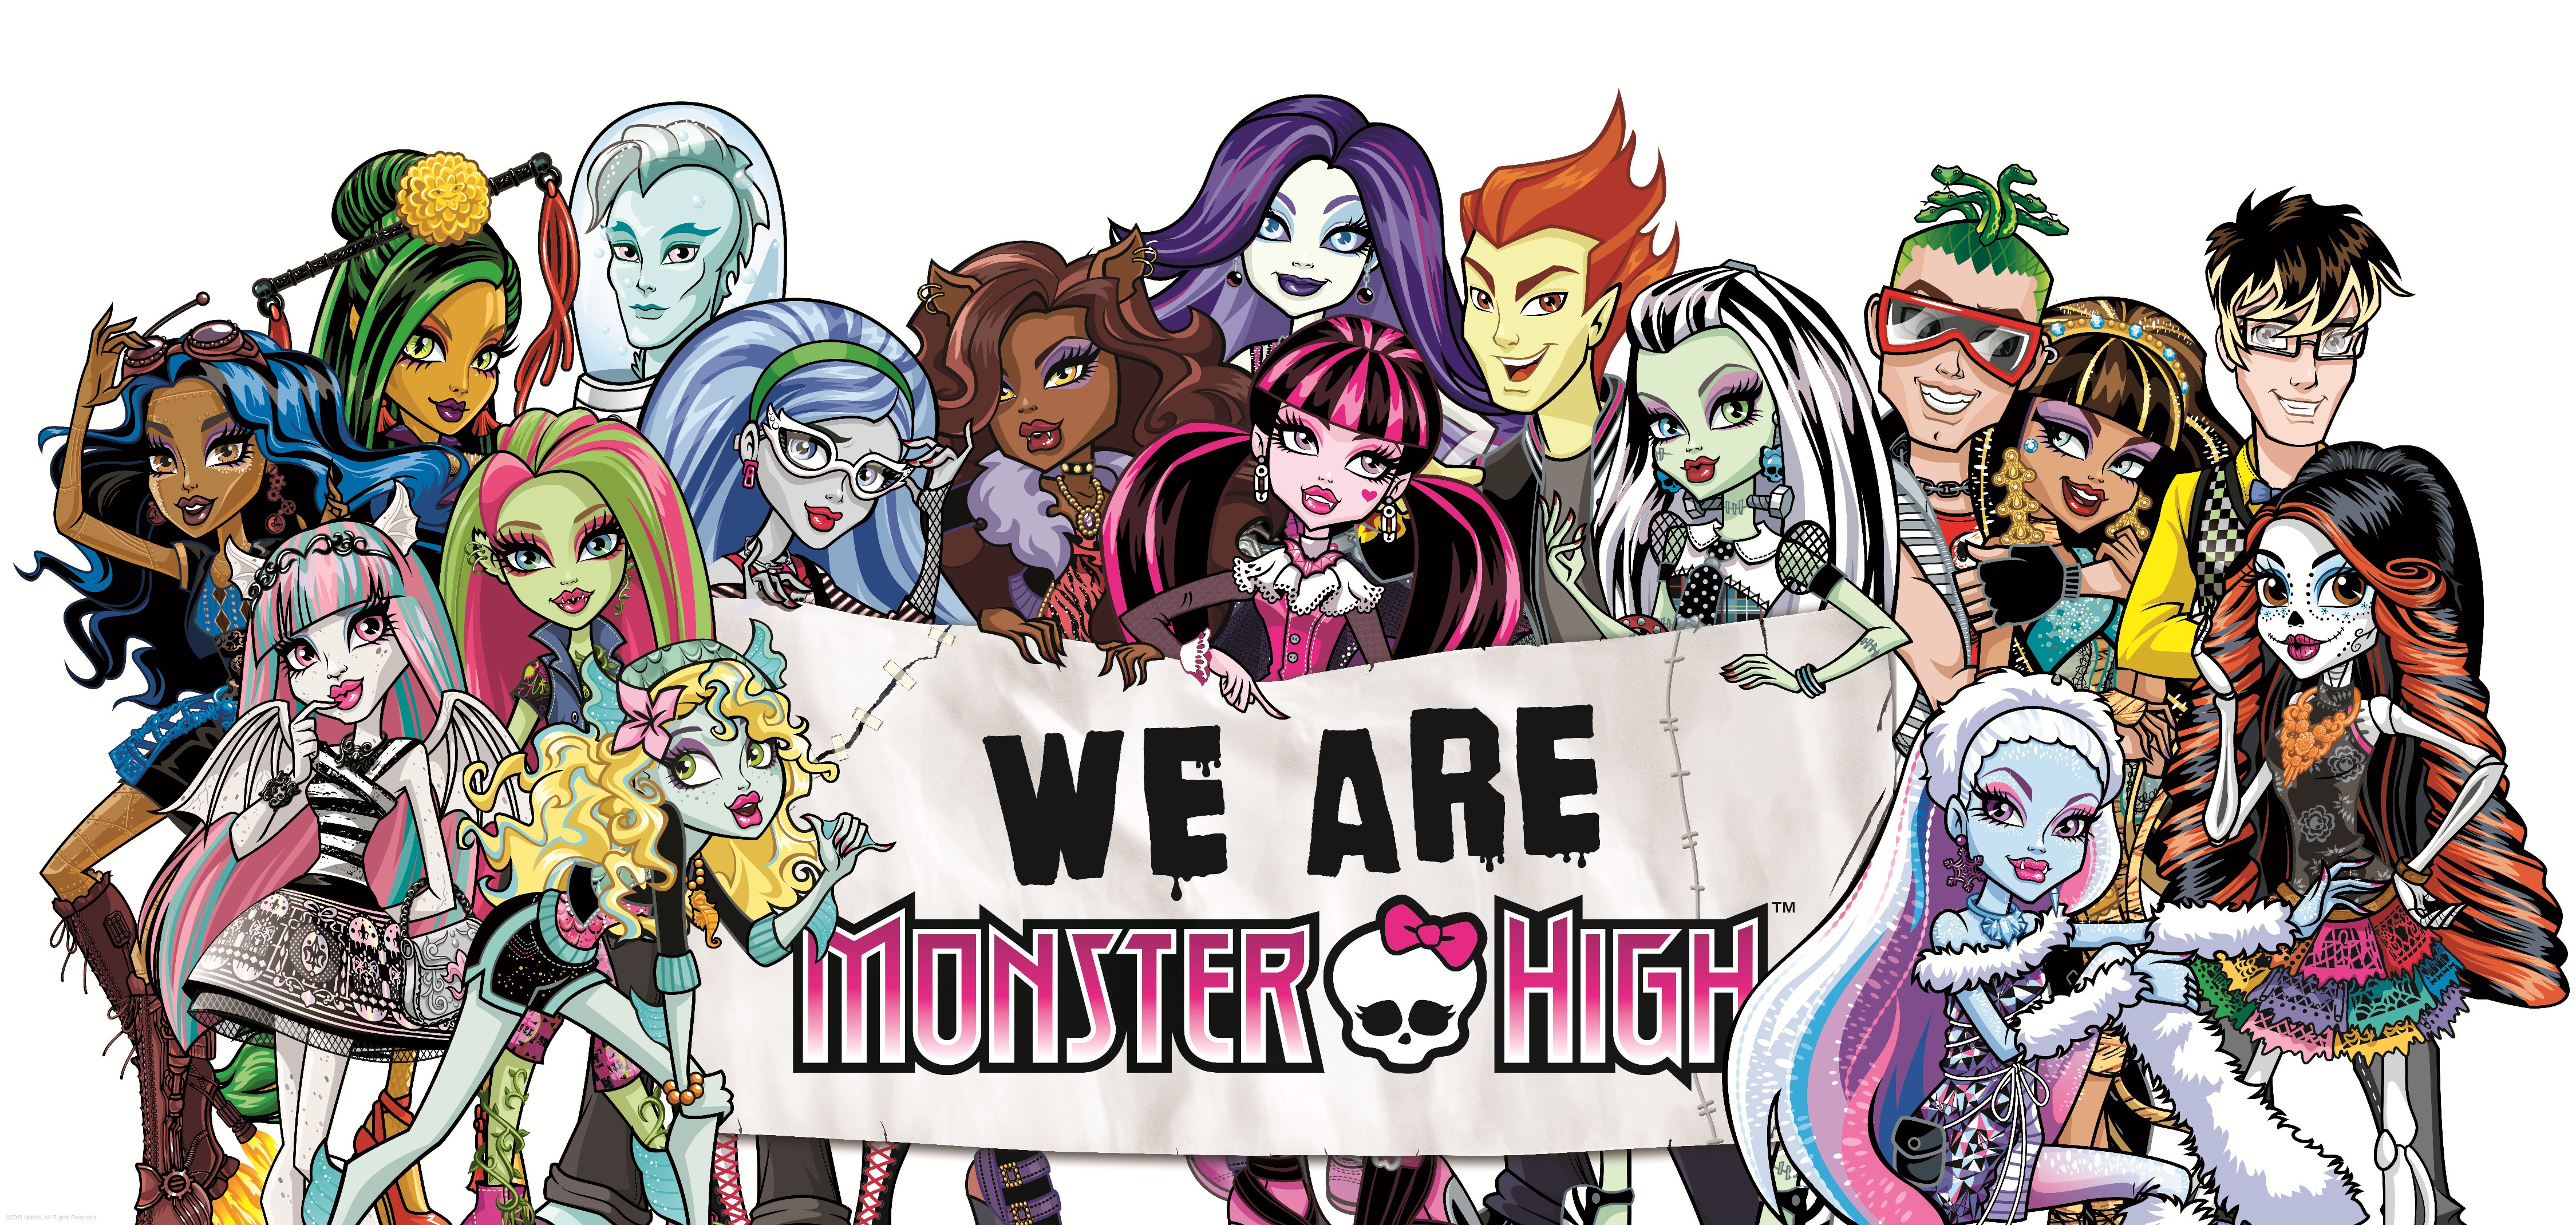 Uncategorized Monster High Pic httpsimages7 alphacoders com835835235 jpg